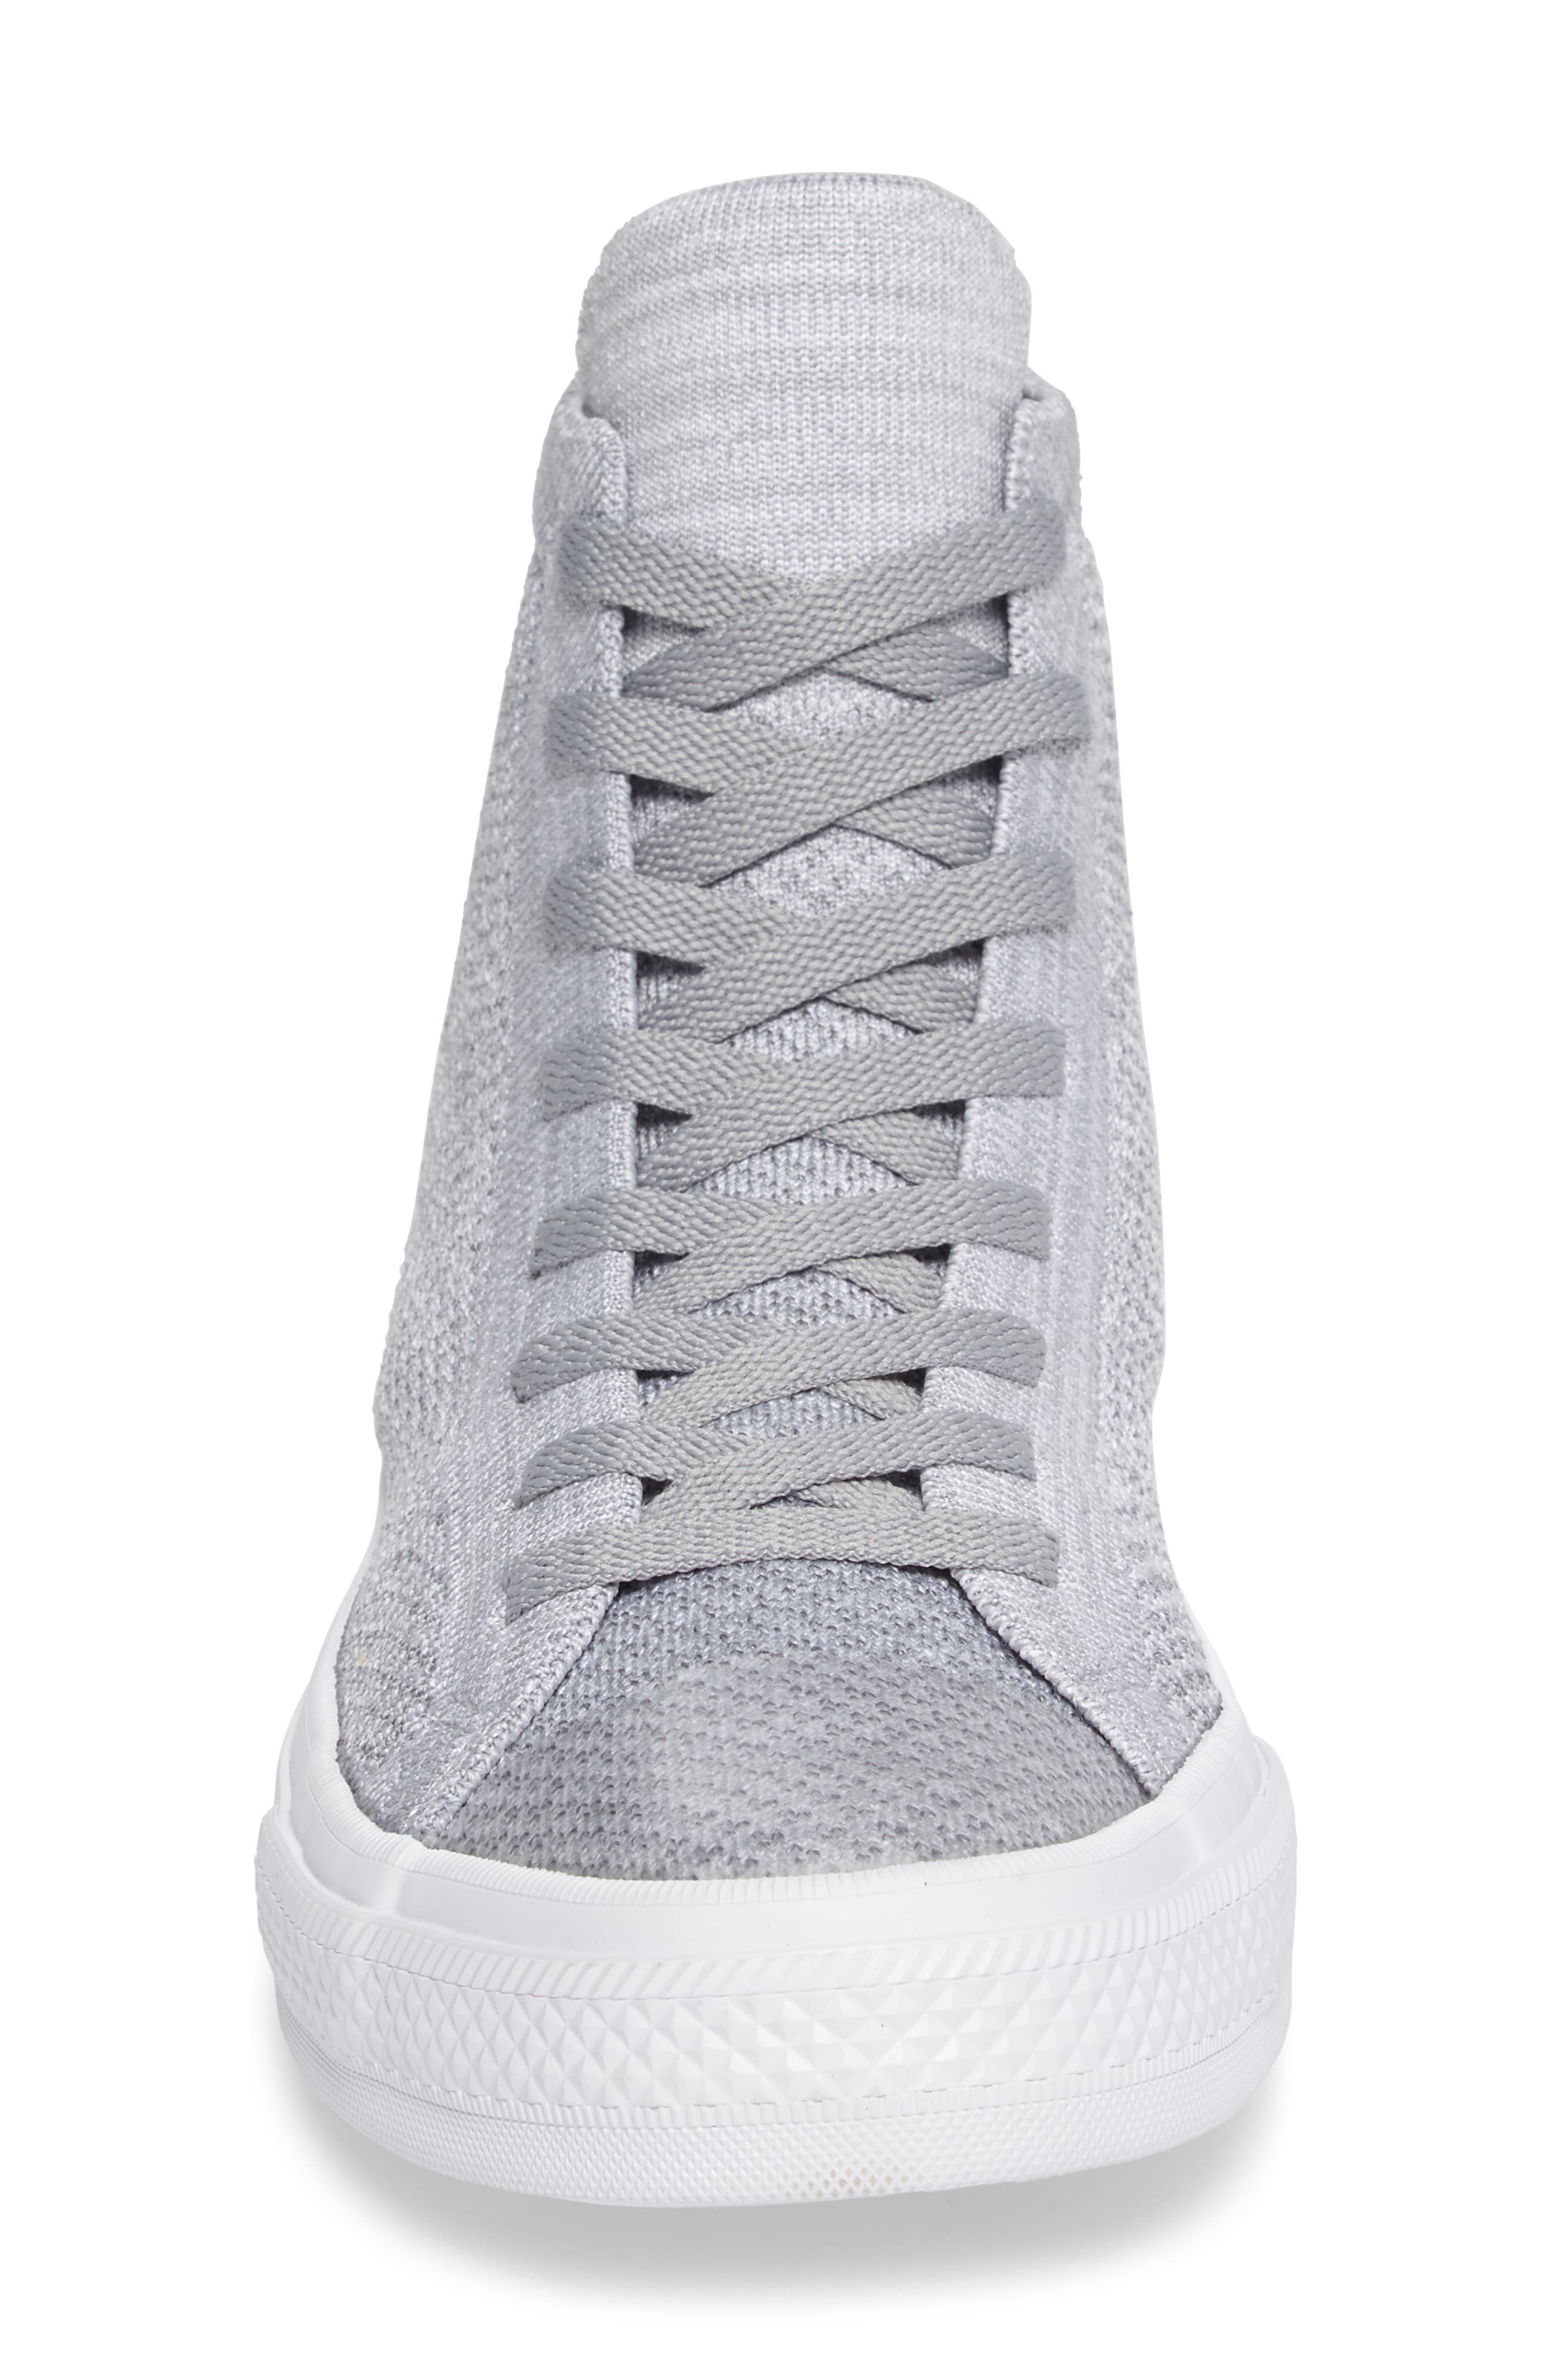 Chuck Taylor<sup>®</sup> All Star<sup>®</sup> Flyknit Hi Sneaker,                             Alternate thumbnail 21, color,